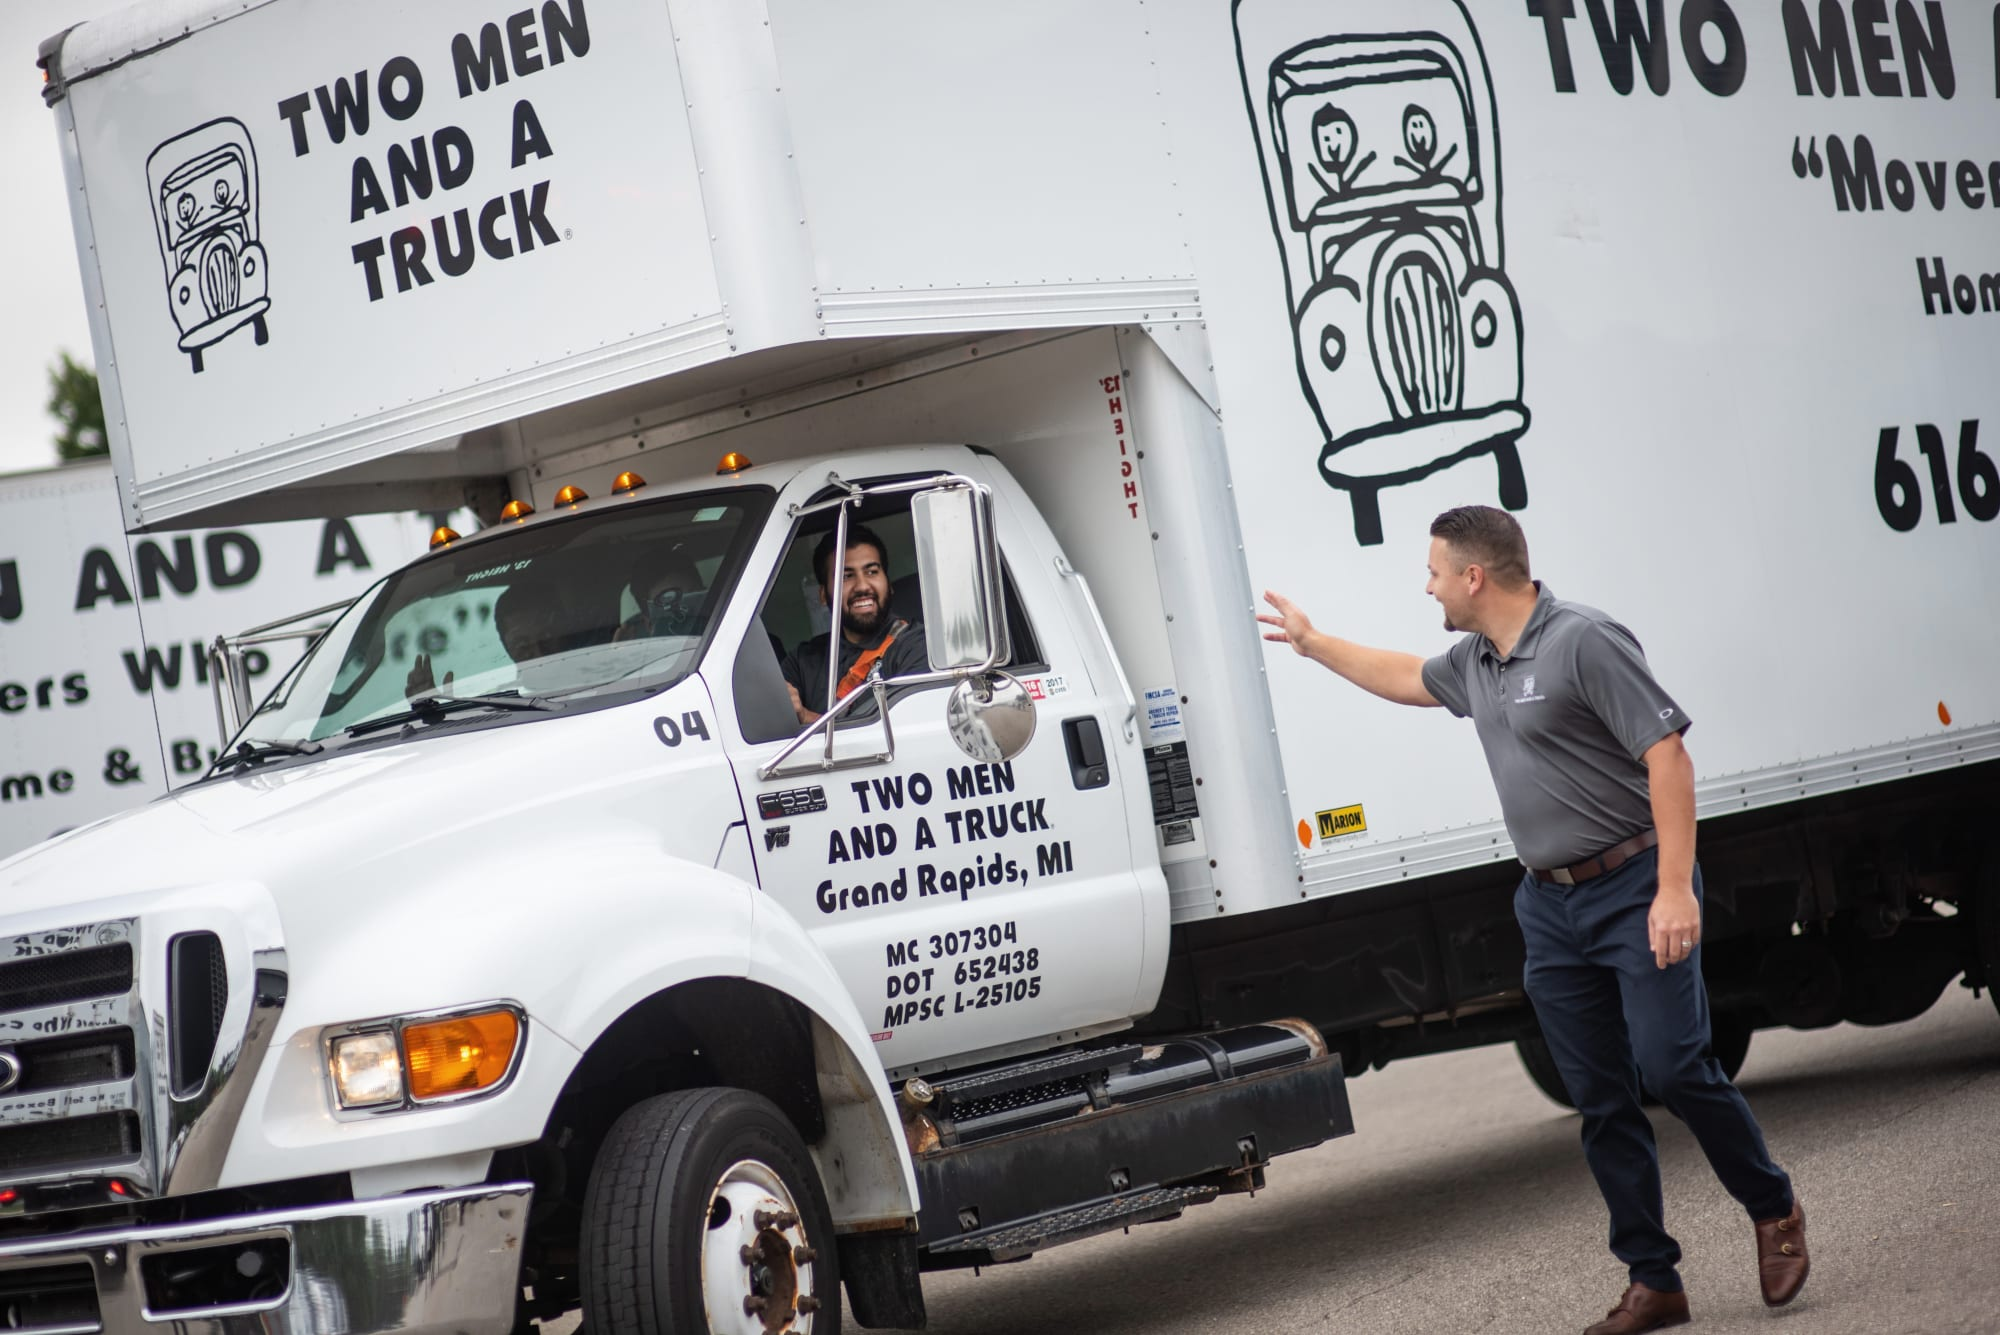 Two Men and a Truck Franchise Truck